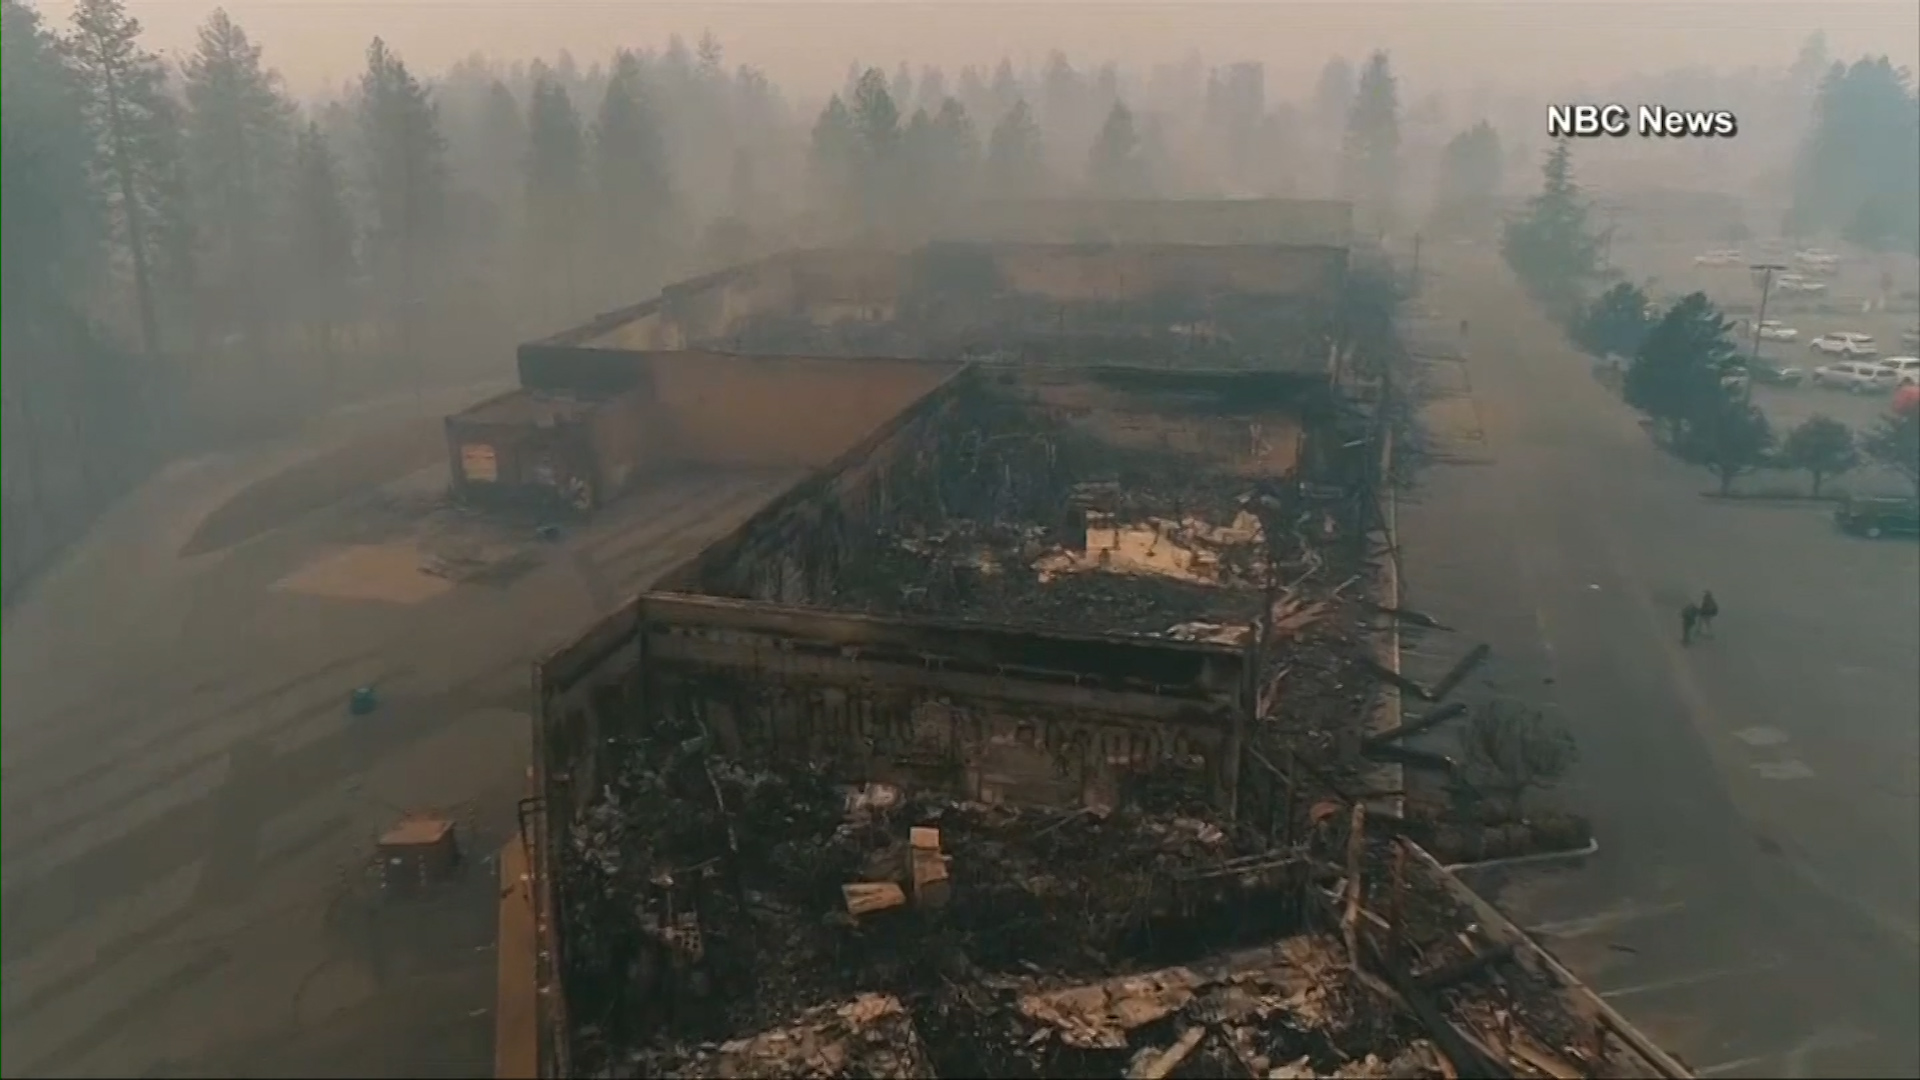 Fire that ravaged California town last fall was caused by power lines